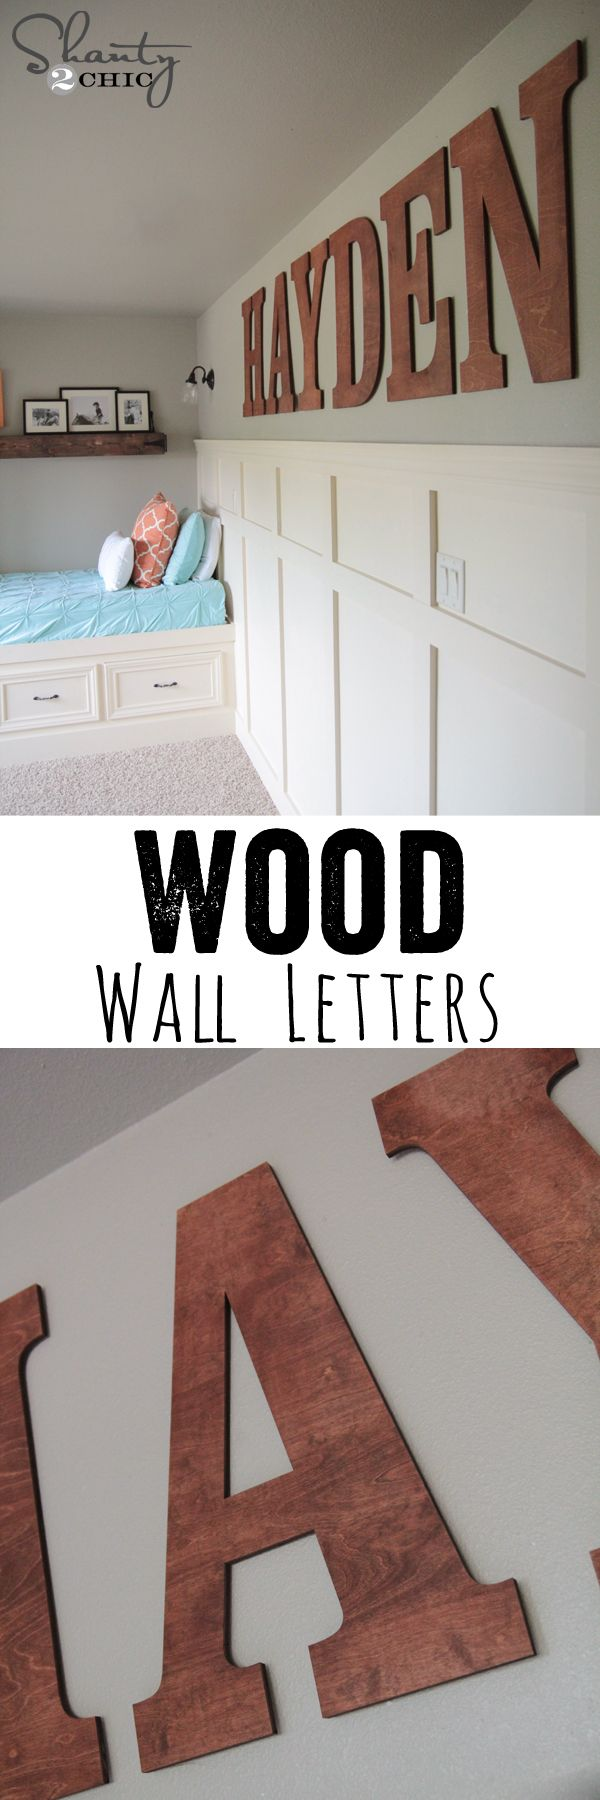 Letters To Hang On Wall 25+ best wall lettering ideas on pinterest | decorative wall